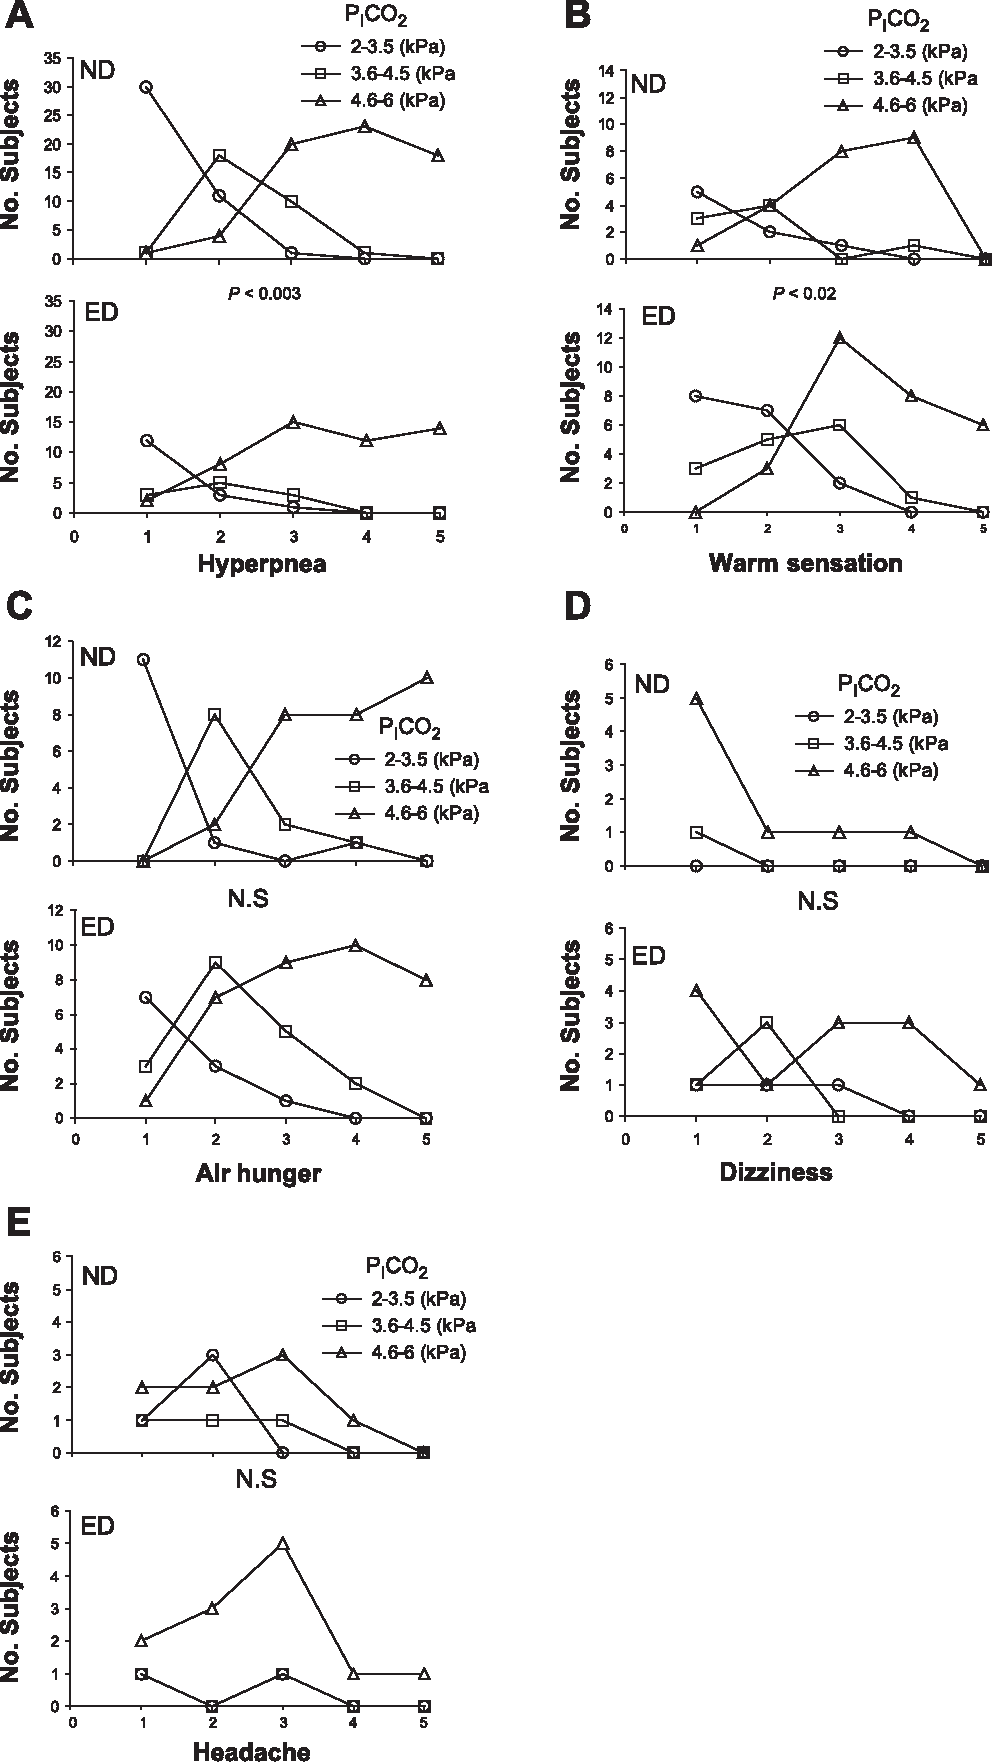 Fig. 3. Frequency of the 5 CO2-related symptoms [hyperpnea (A), air hunger (B), warm sensation (C), dizziness (D), and headache (E)] and their perceived intensity (1 very slight to 5 extreme), in the ND and ED phases as a function of PICO2.